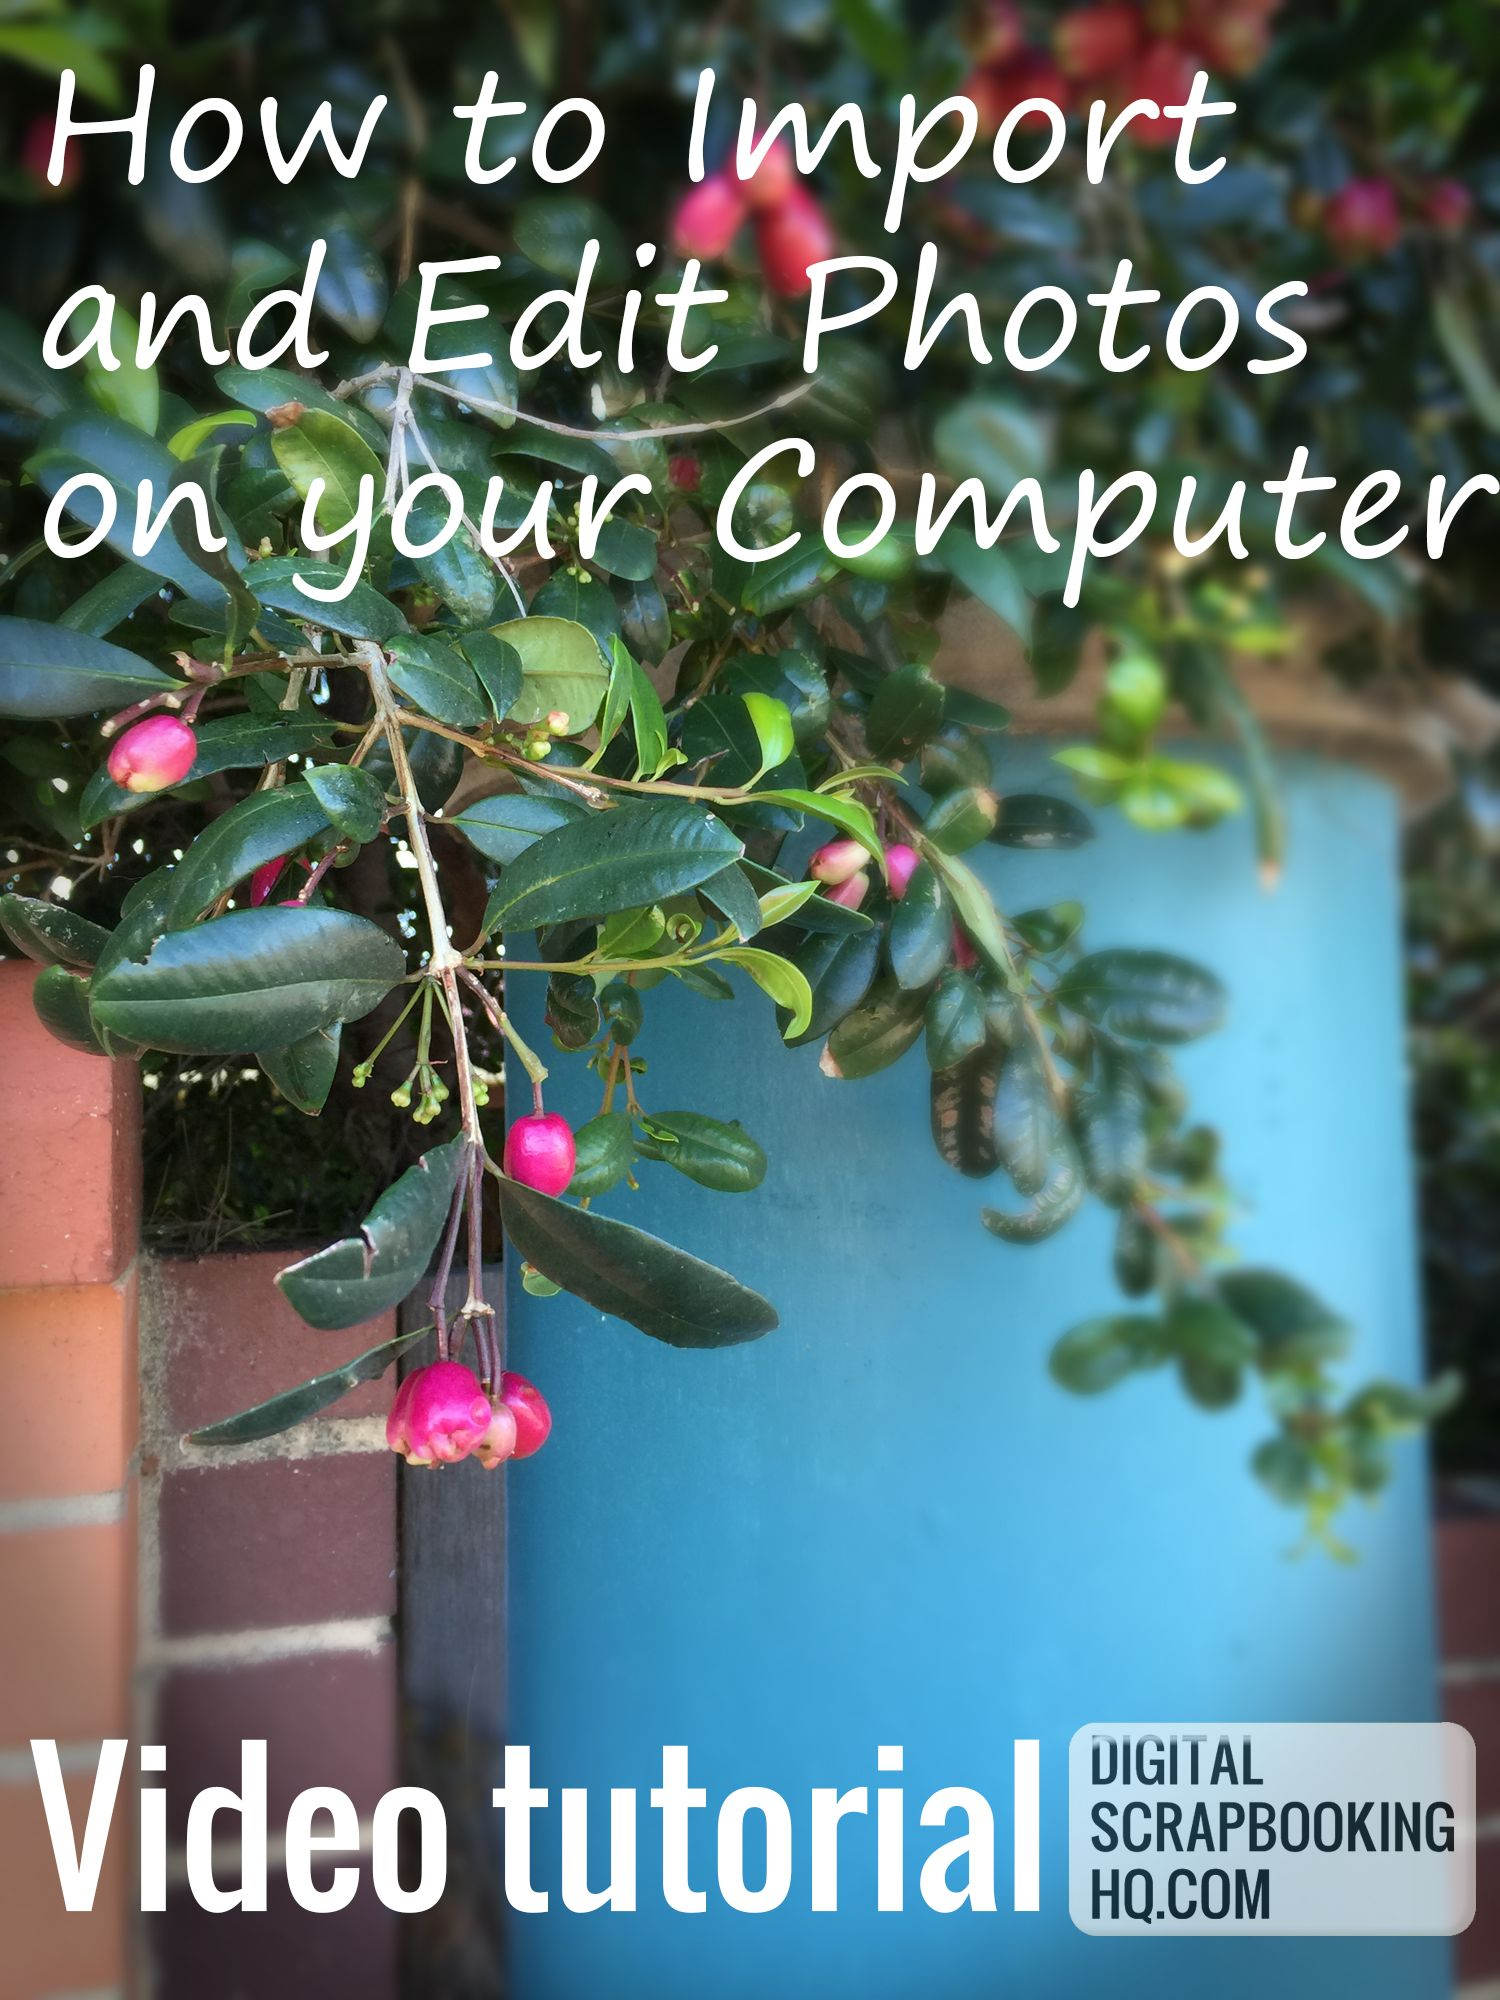 How to Import and Edit Photos on your Computer